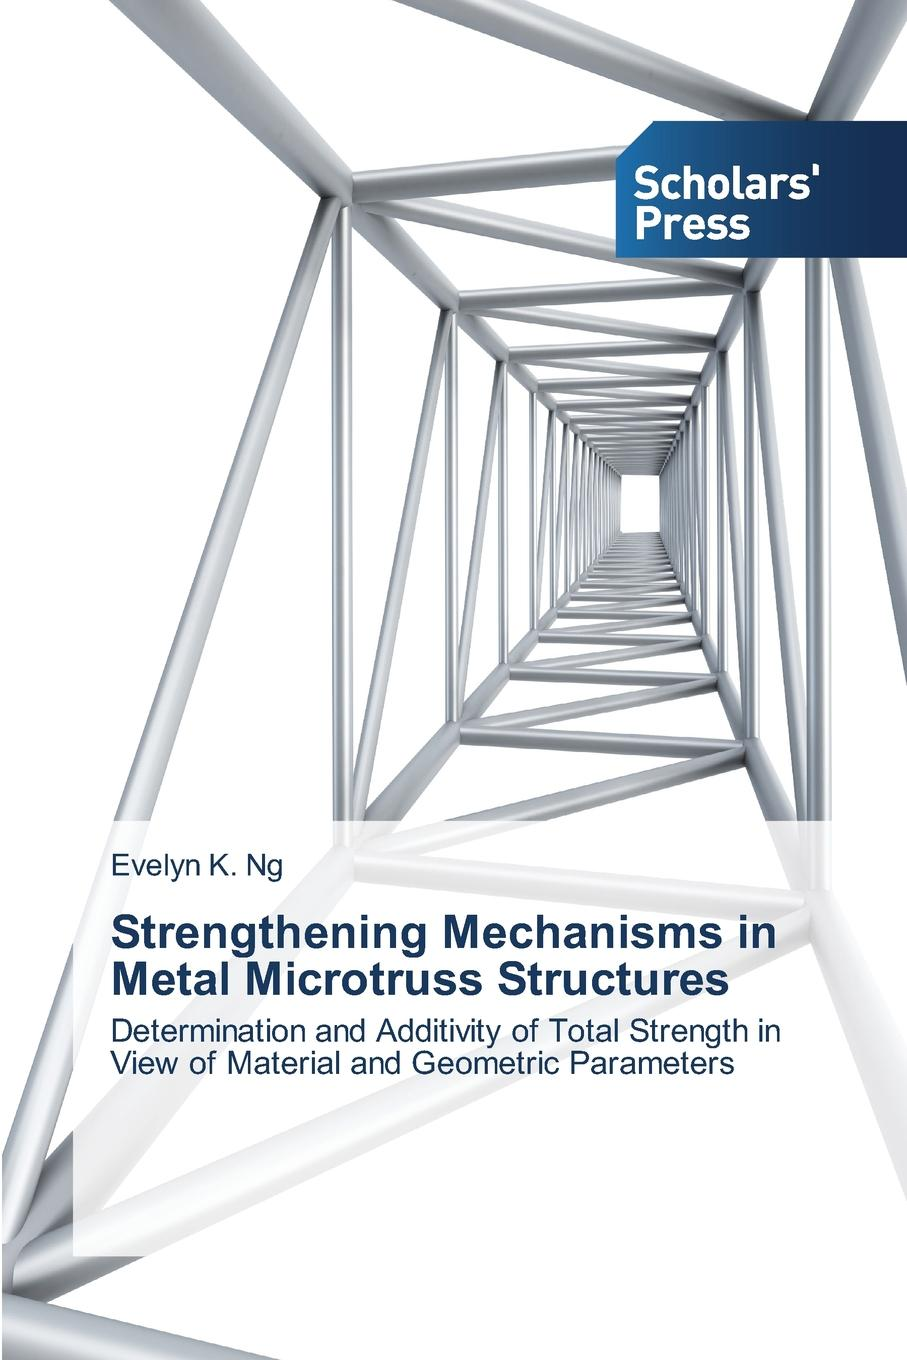 Ng Evelyn K. Strengthening Mechanisms in Metal Microtruss Structures